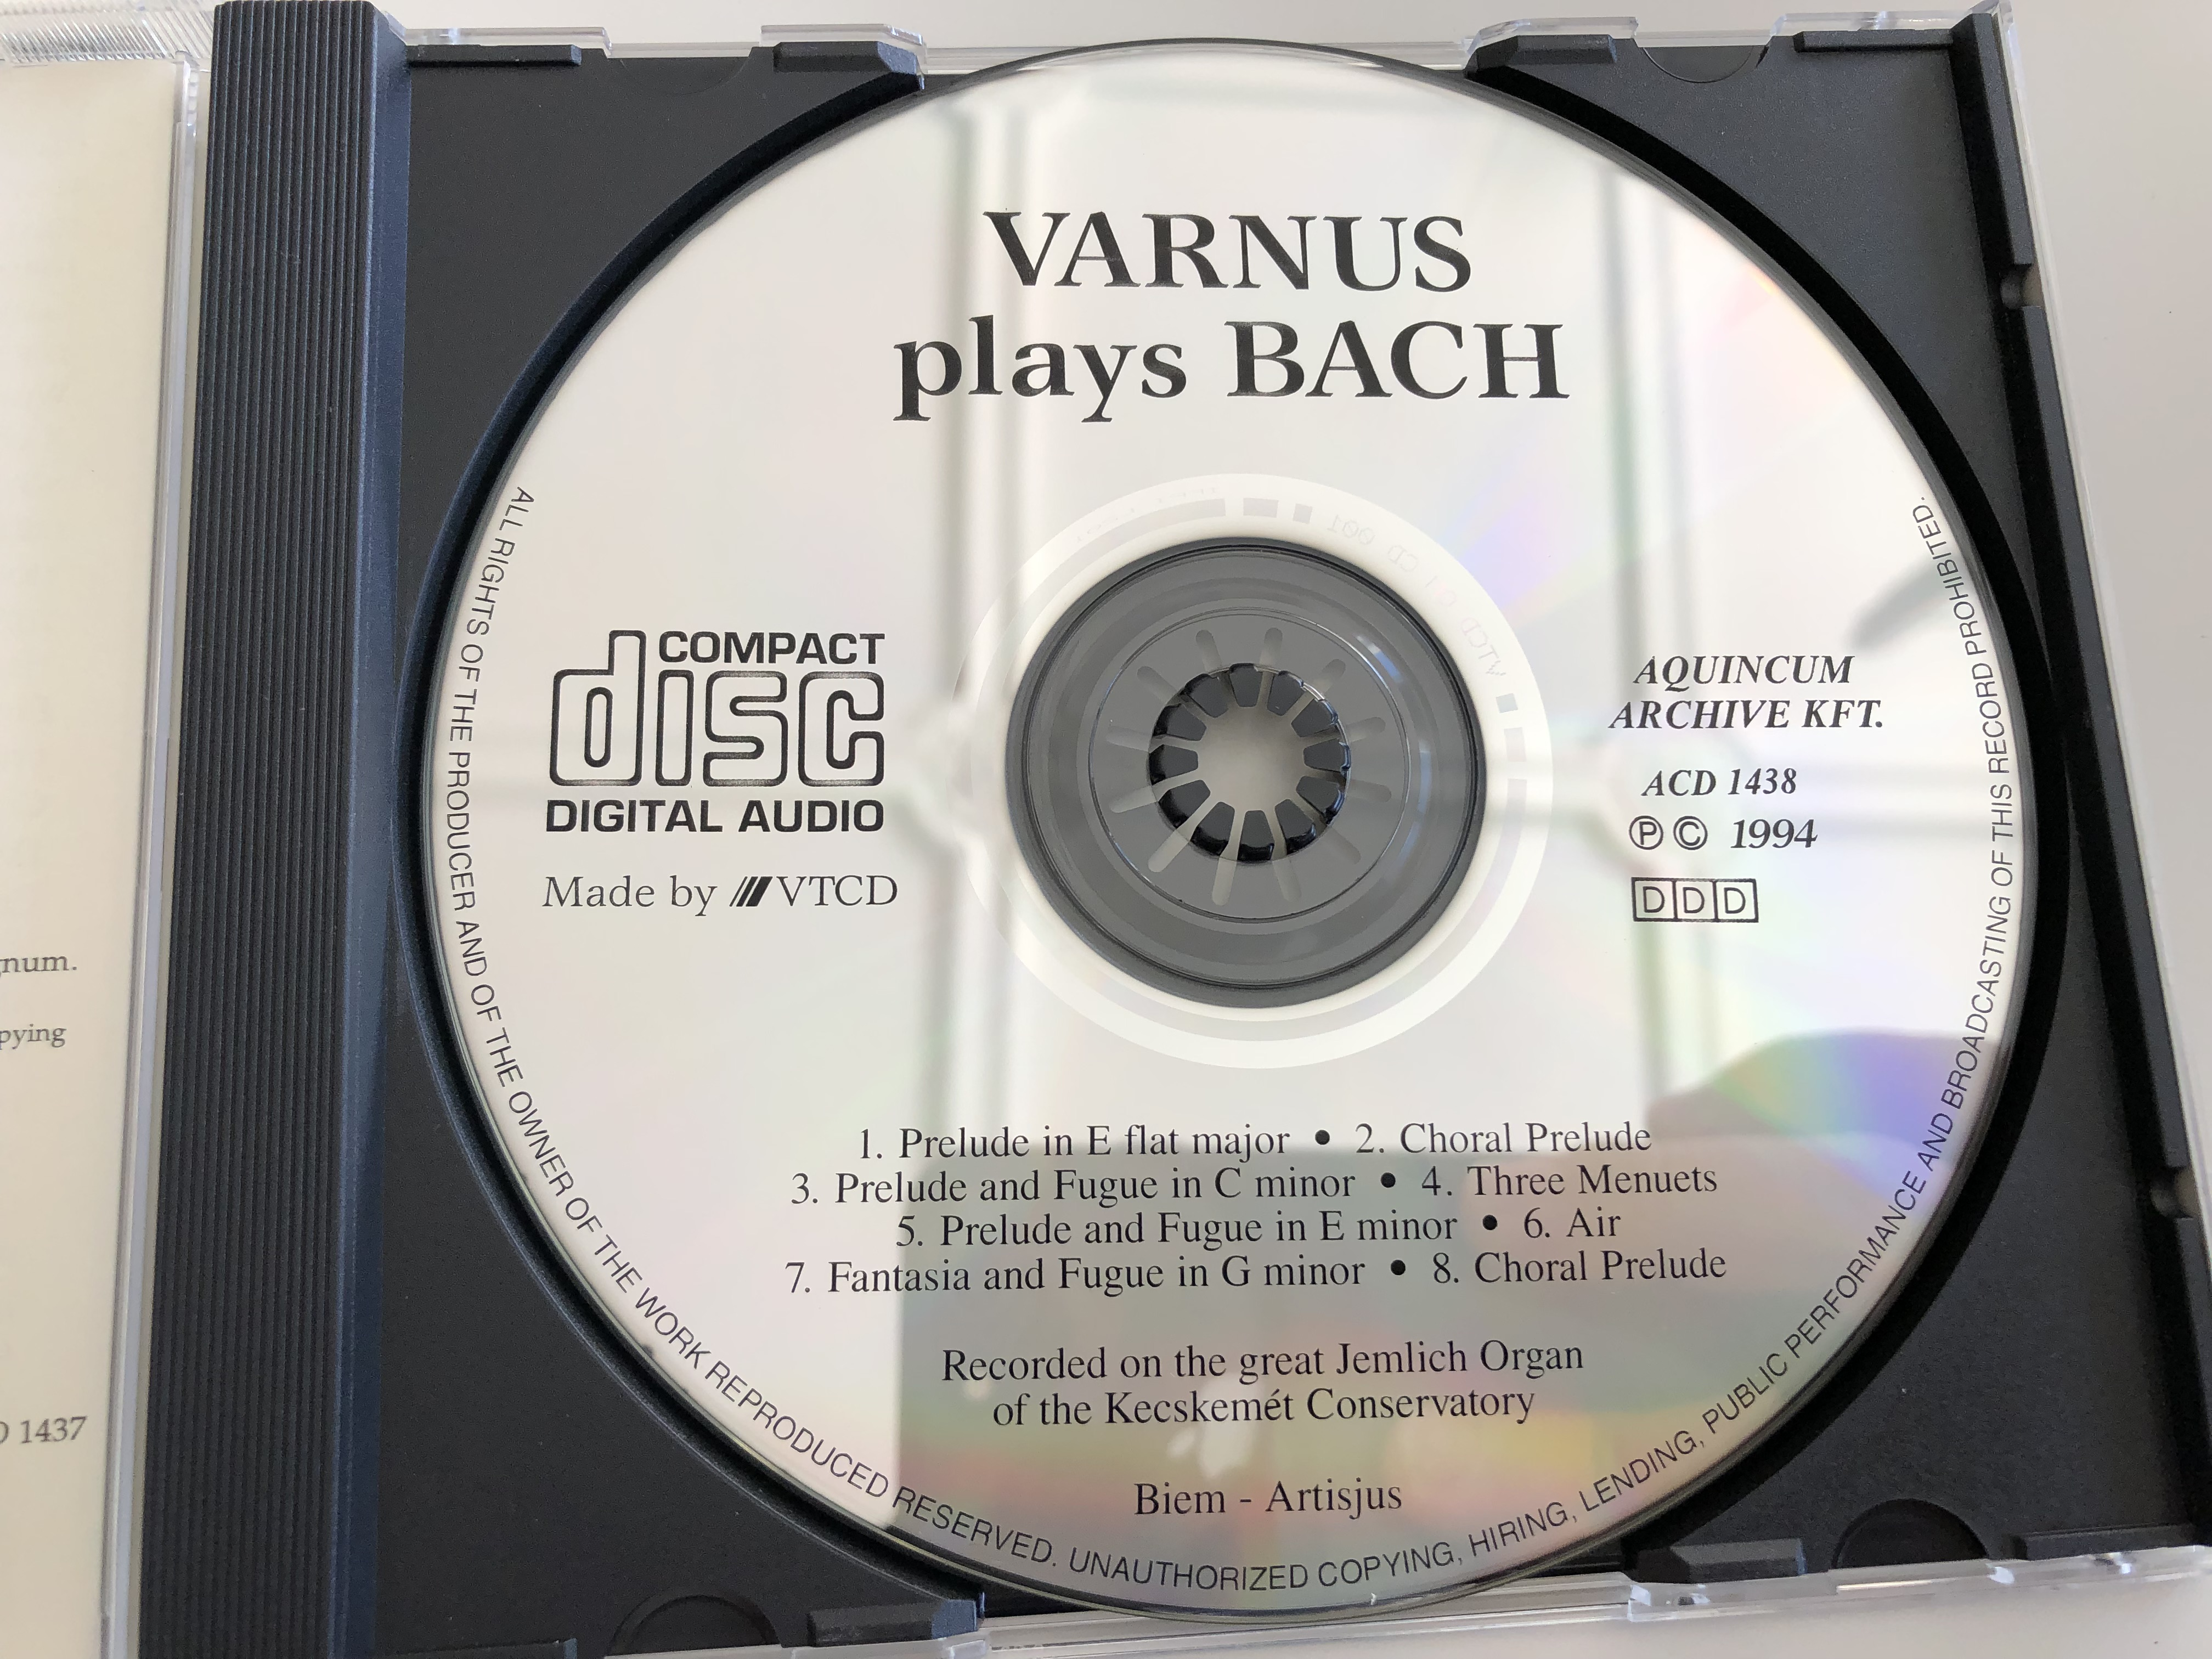 xaver-varnus-the-legendary-organist-plays-bach-audio-cd-1994-great-prelude-in-e-flat-major-prelude-fugue-in-e-minor-fantasia-fugue-in-g-minor-air-on-the-g-string-recorded-on-the-kecskem-t-conservatory-organ-in-hung-5177377-.jpg